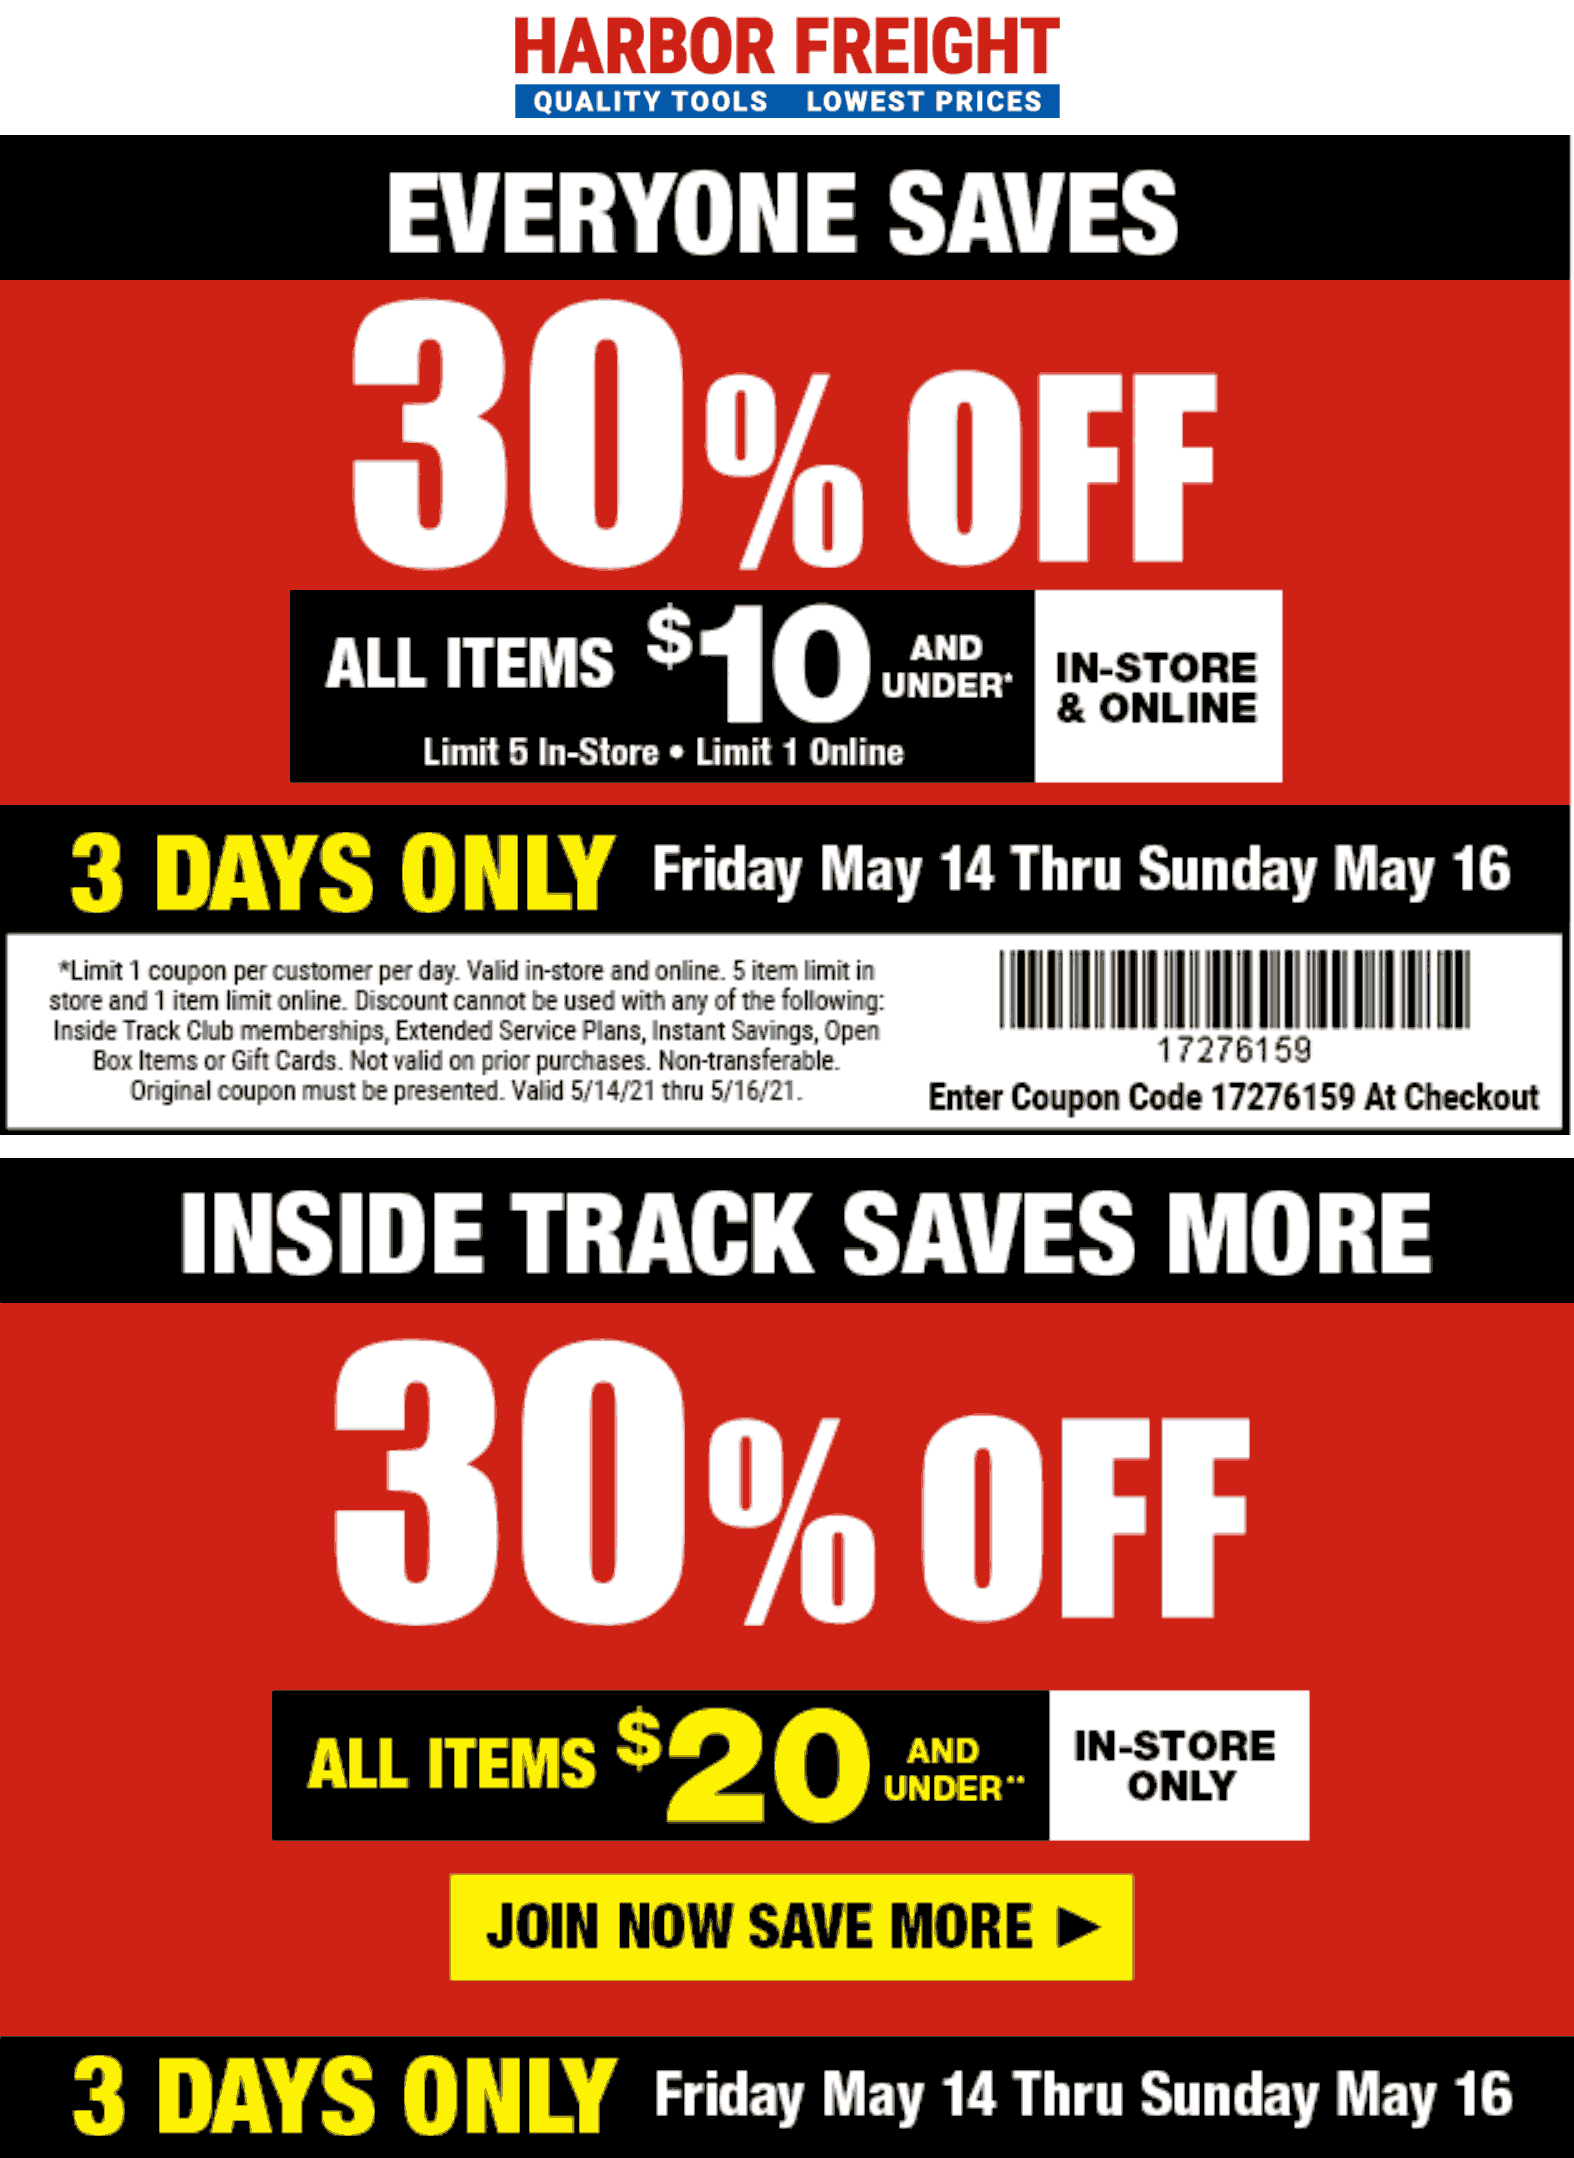 Harbor Freight stores Coupon  30% off at Harbor Freight Tools, or online via promo code 1726159 #harborfreight